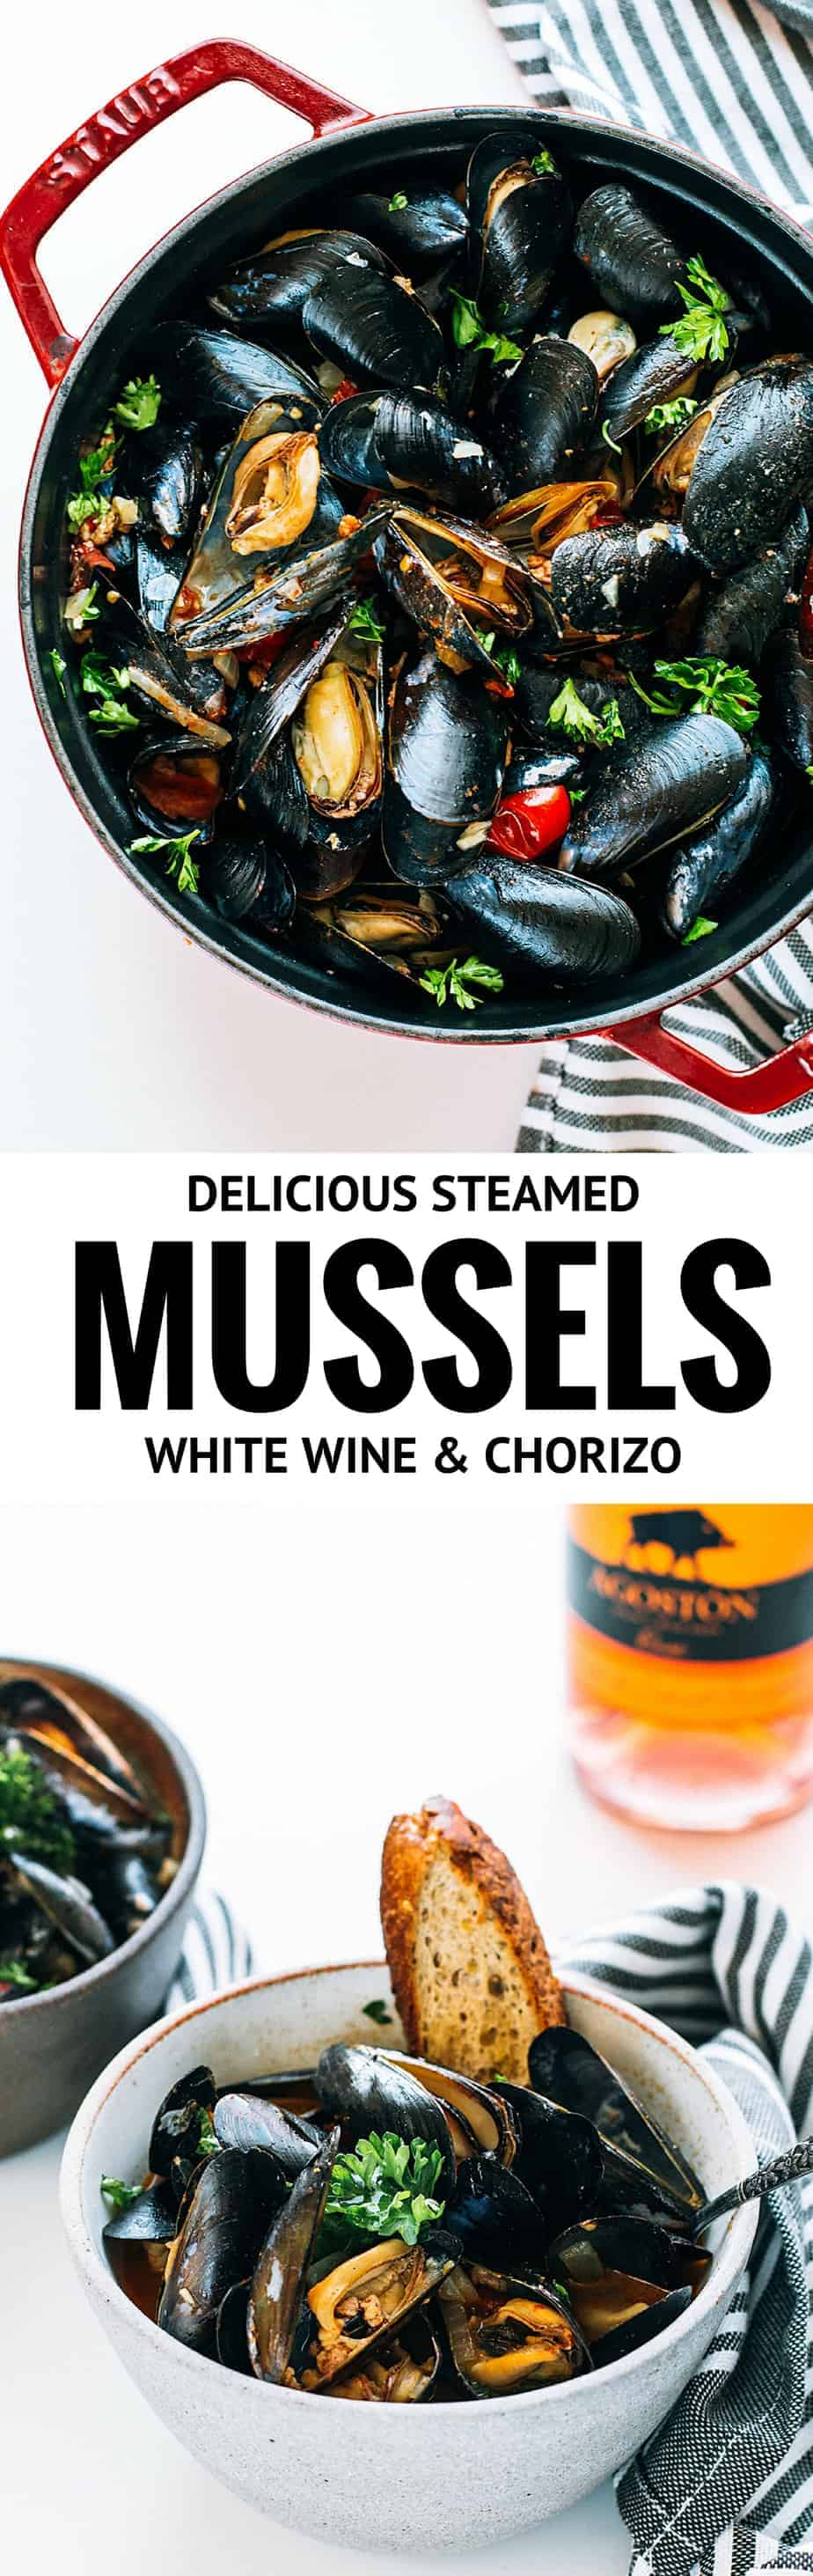 simplest way to cook mussels, and perhaps the most satisfying result. Steamed mussels recipe in white wine, tomatoes, chorizo.